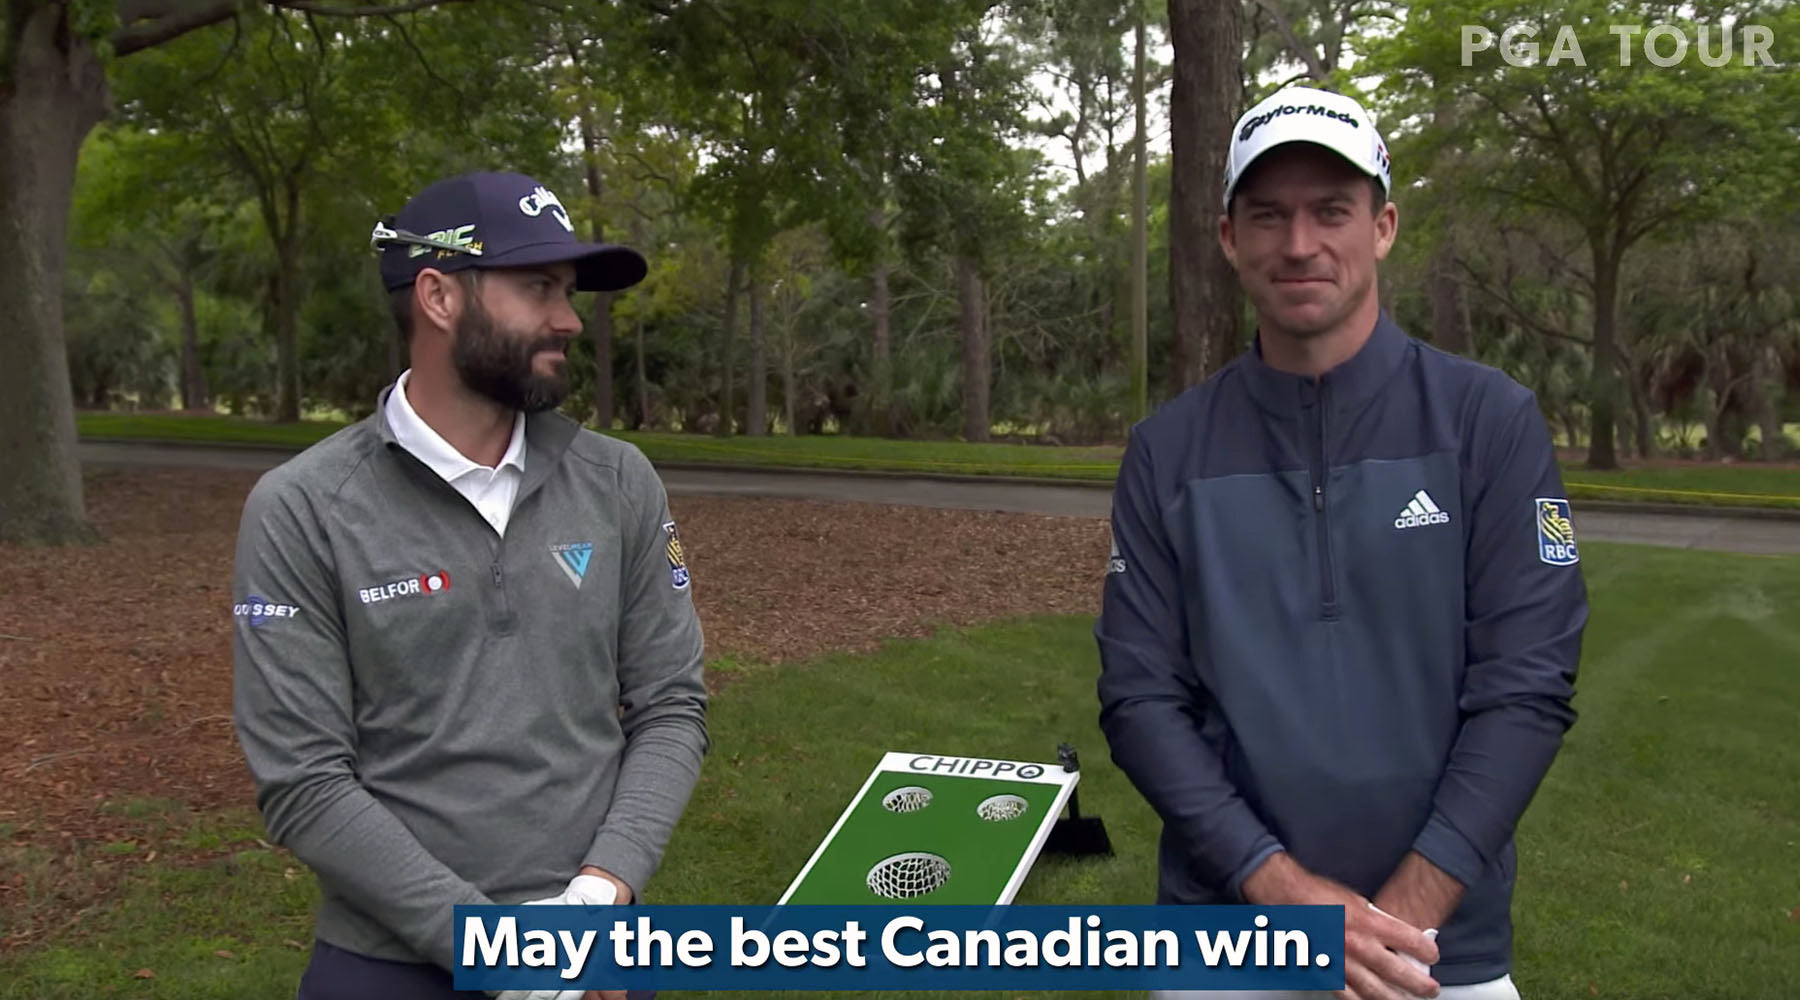 Chippo Challenge, Eh?: Hadwin vs. Taylor, Battle of the Canadians